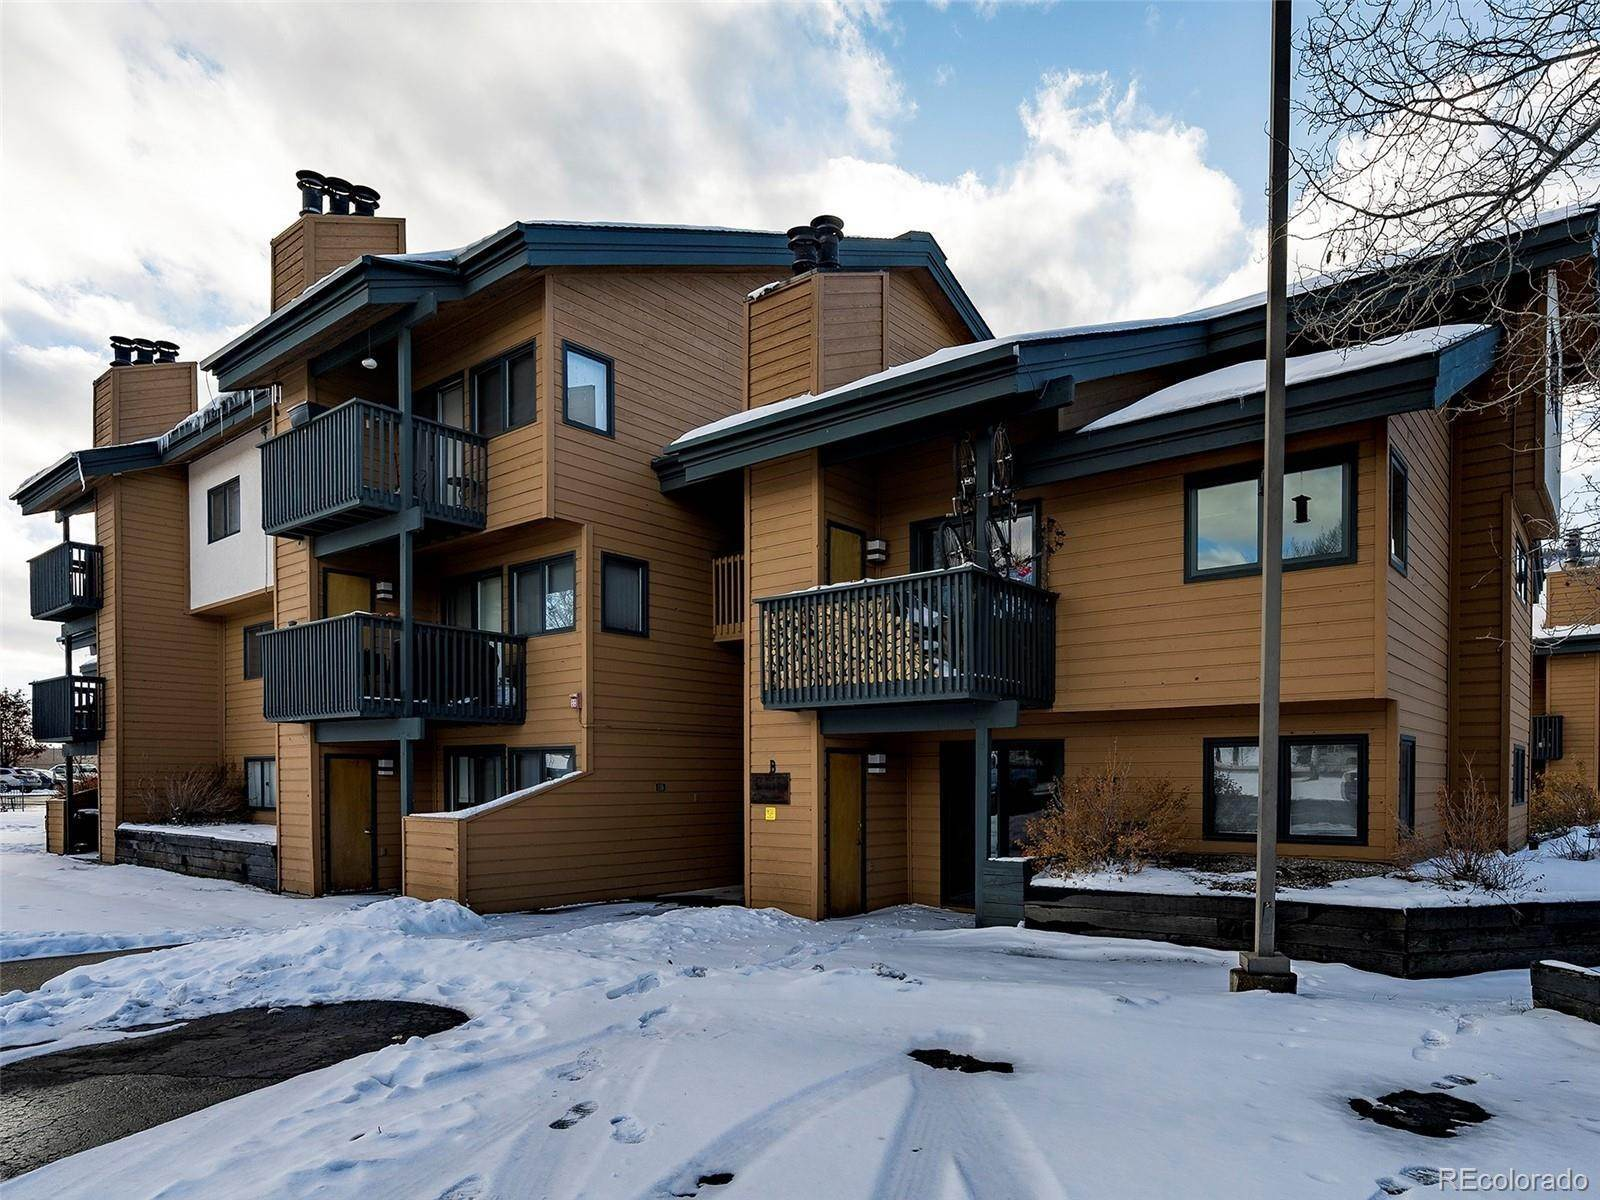 Condominiums at Steamboat Springs, Colorado United States